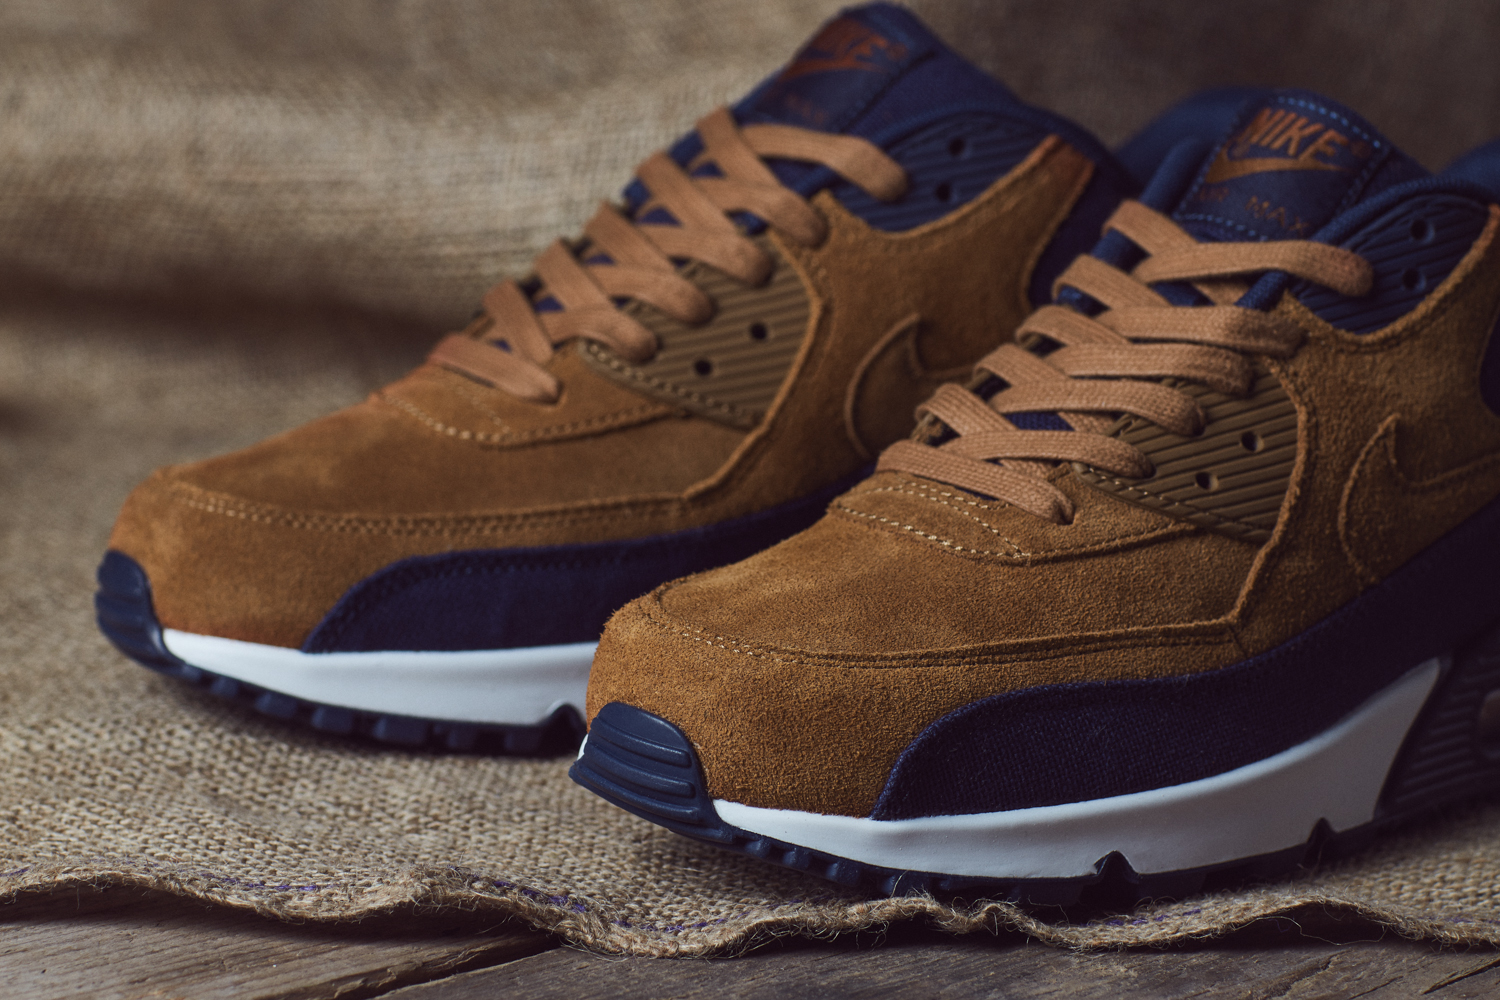 nike air max 90 sneaker boot brown 2015 impala